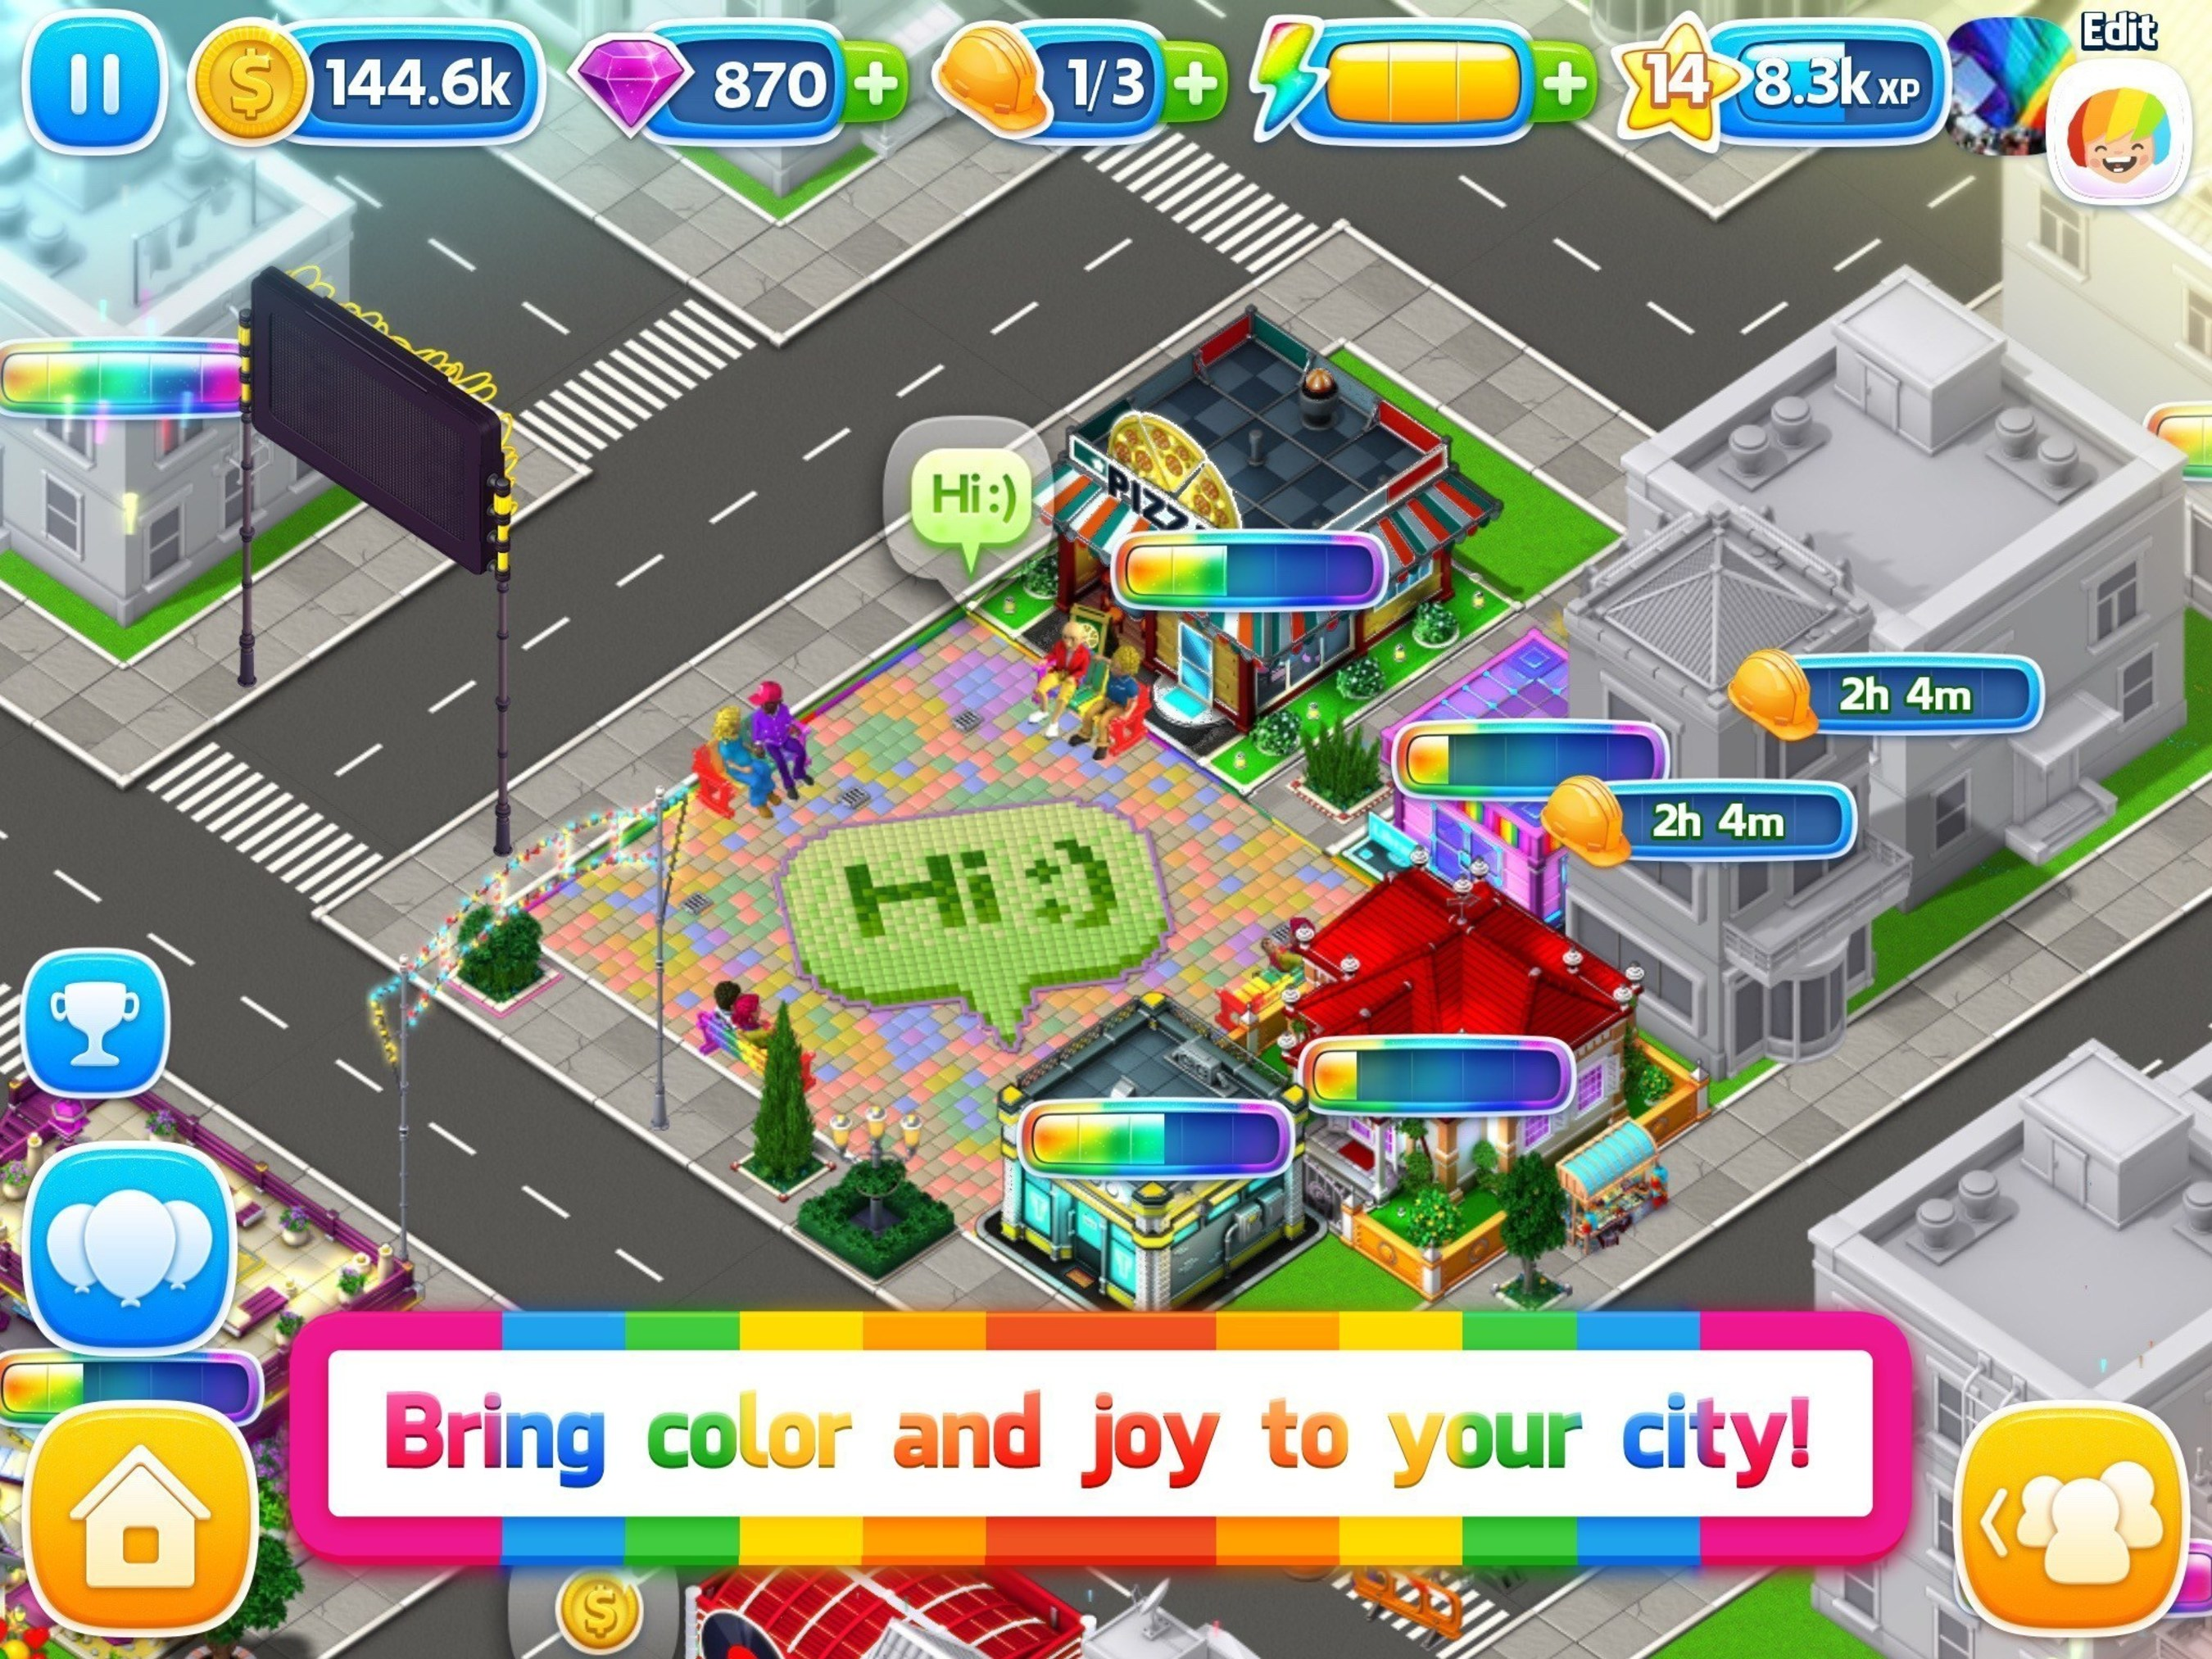 Atari' Announces Test Launch in Canada for its Original LGBTQ Social-Simulation Game, Pridefest; 'Available Friday, September 25, 2015 to Canadian Customers on the App